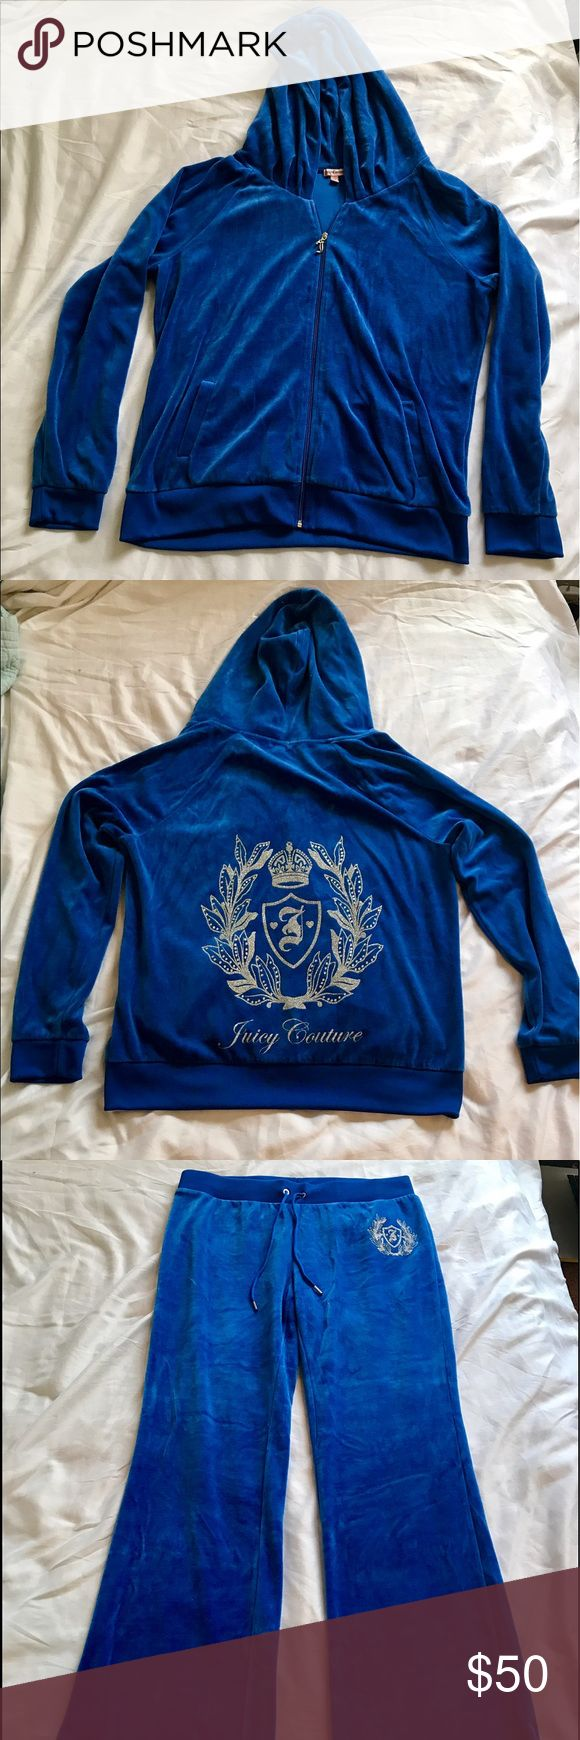 2 Juicy Couture sweat suits Blue Velour sweatsuit (full length pant) & Pink Terry sweatsuit (Capri pants) Juicy Couture Other